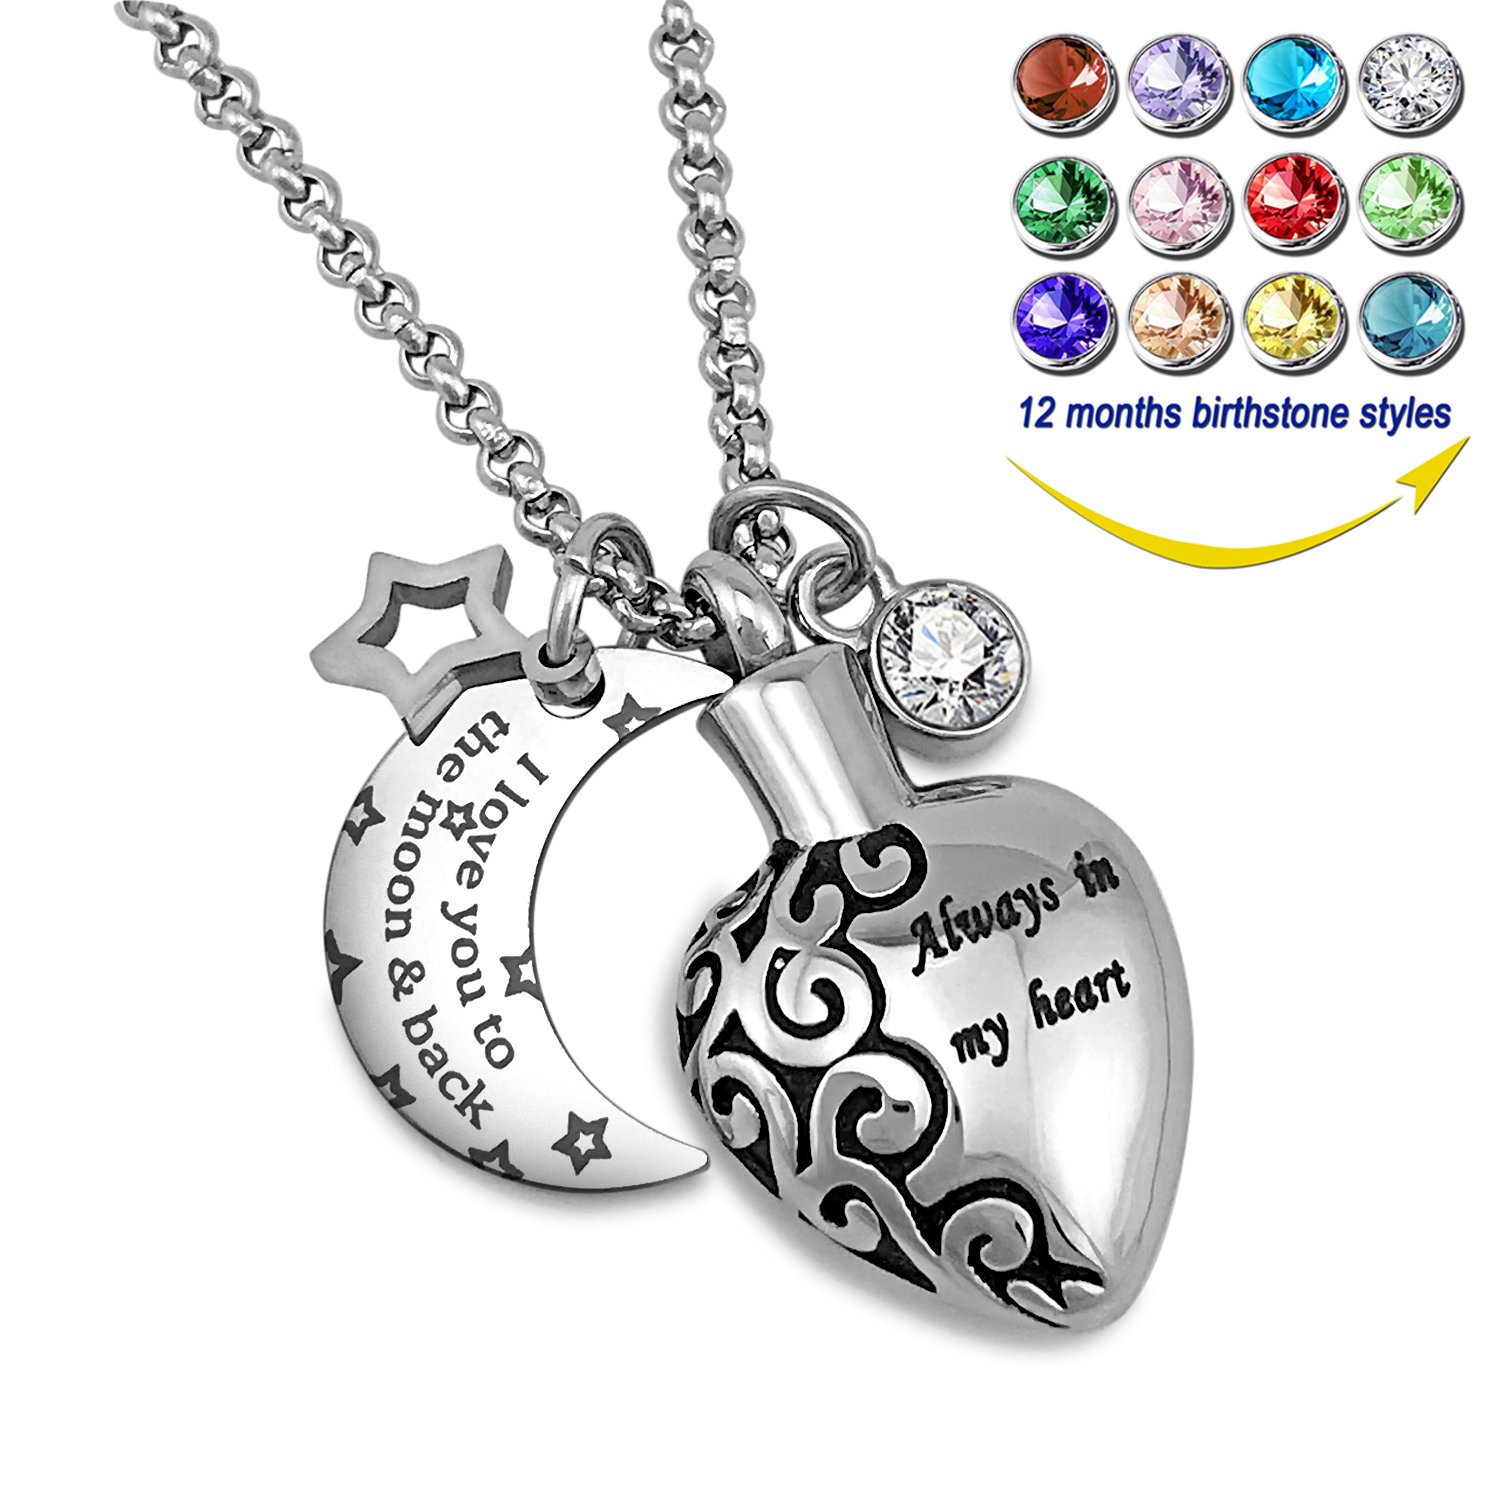 YOUFENG Urn Necklaces for Ashes Aways in My Heart I Love You to The Moon and Back Ashes Holder Pendant Necklace (April Birthstone URN Necklace)